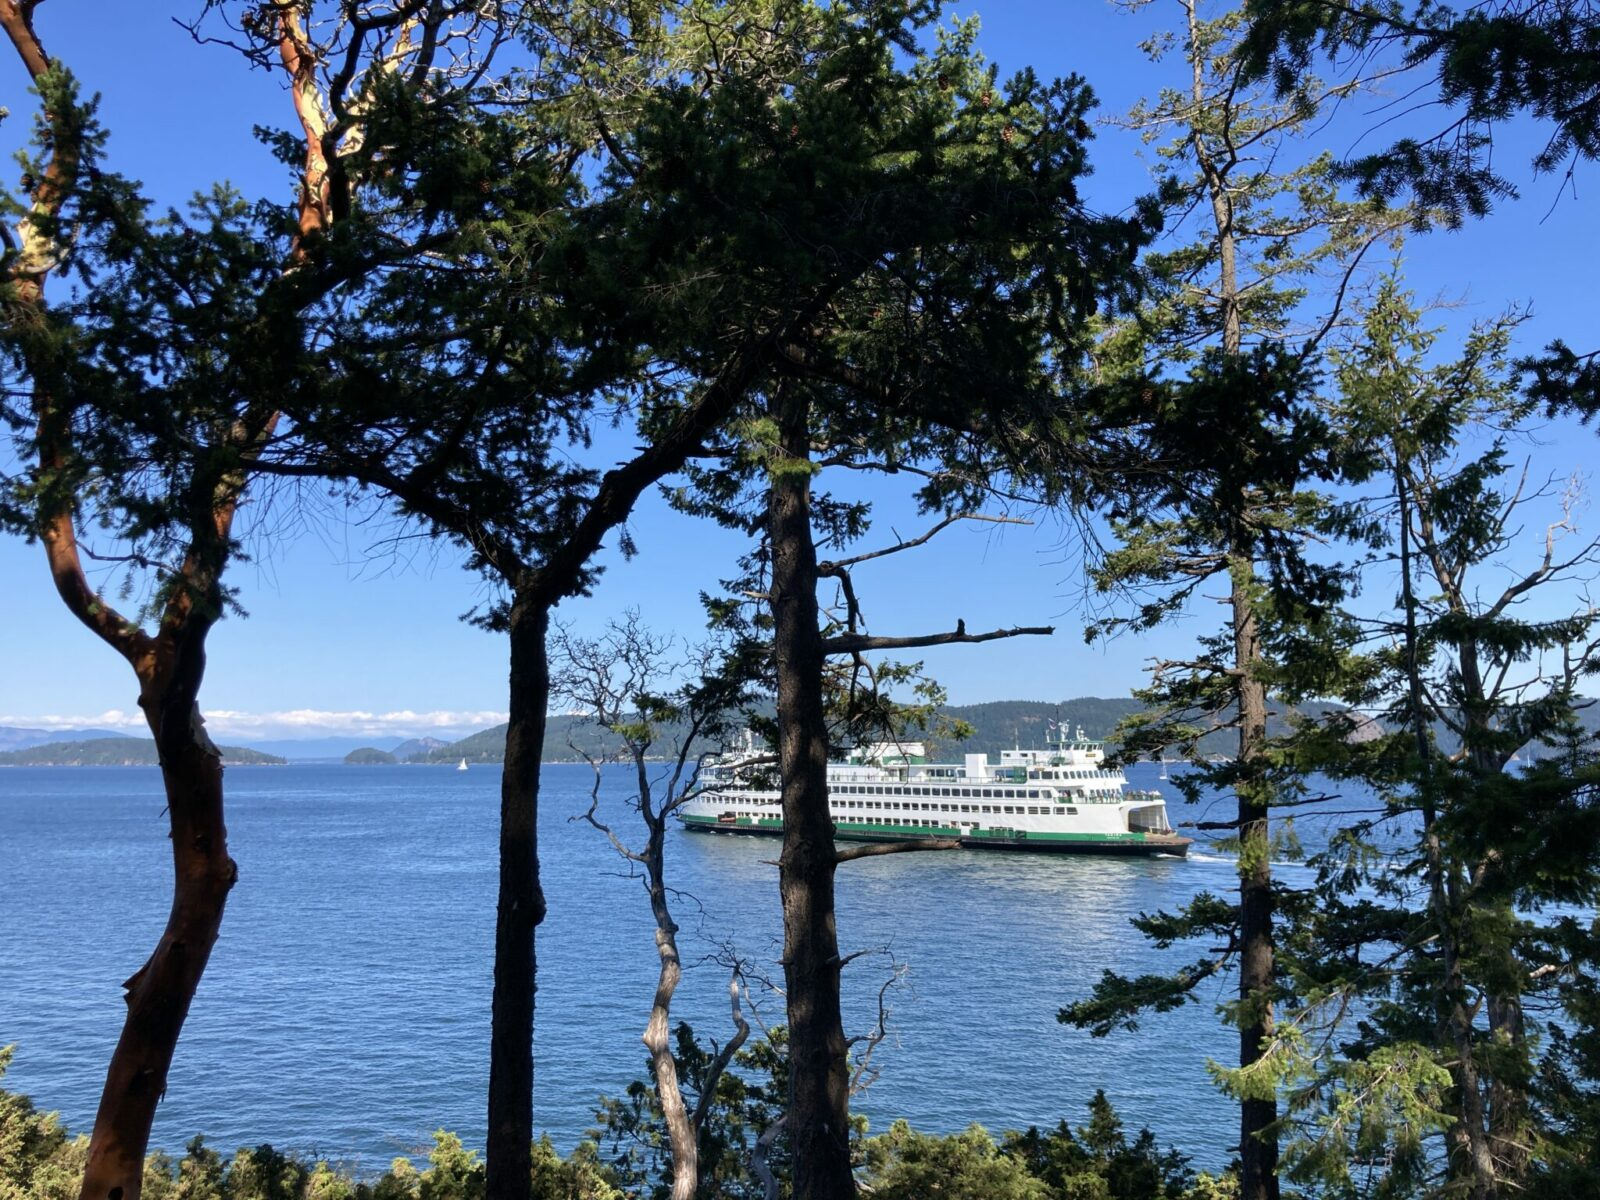 A ferry departing Lopez Island seeing from the hill above through the forest